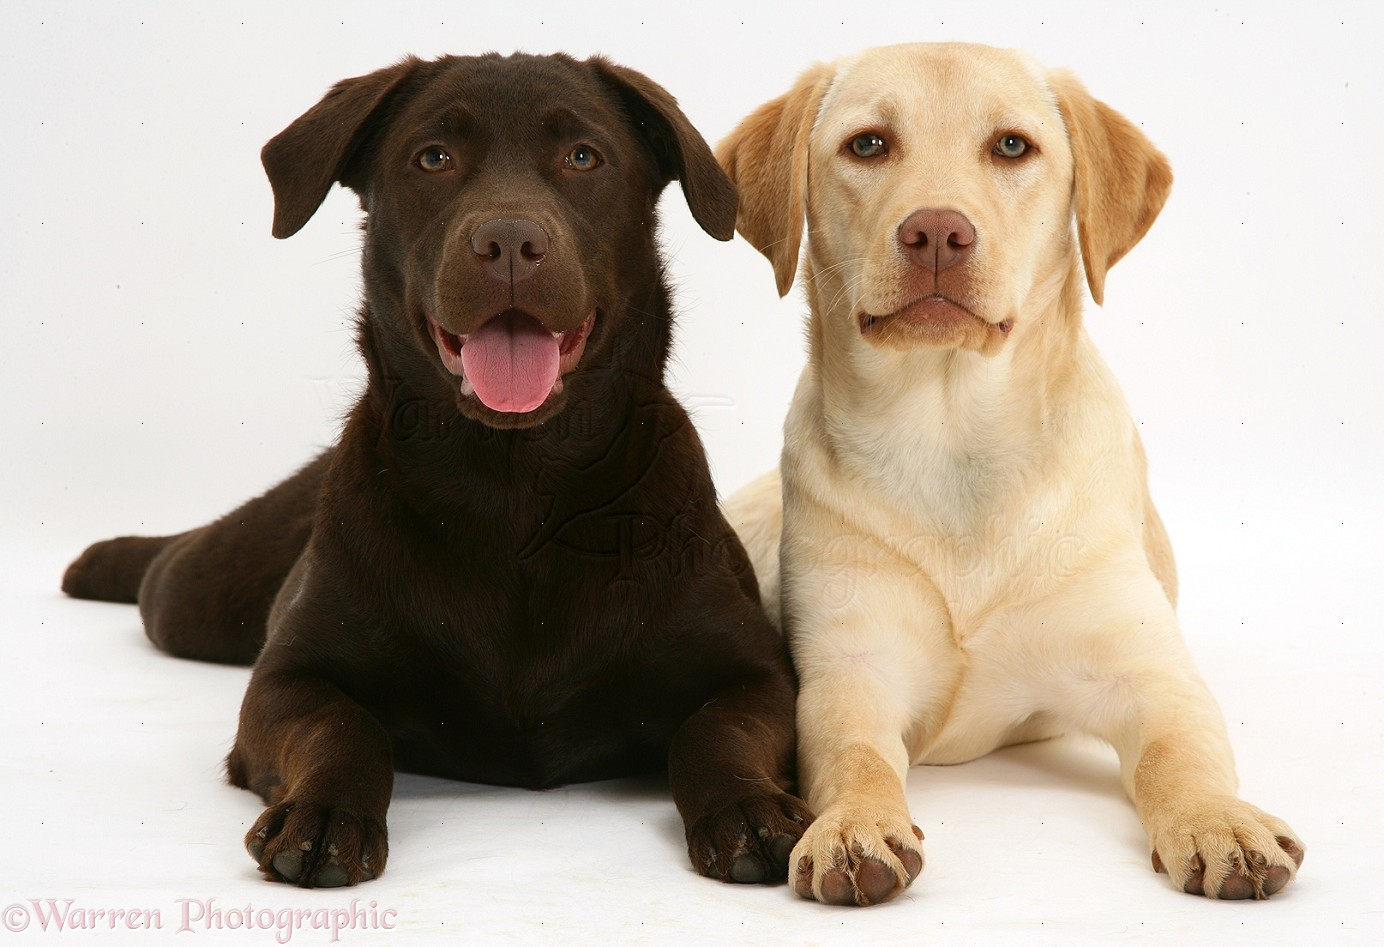 Labrador Retrievers Chocolate Labrador Retrievers Yellow LabradorWhite And Yellow Labrador Retriever